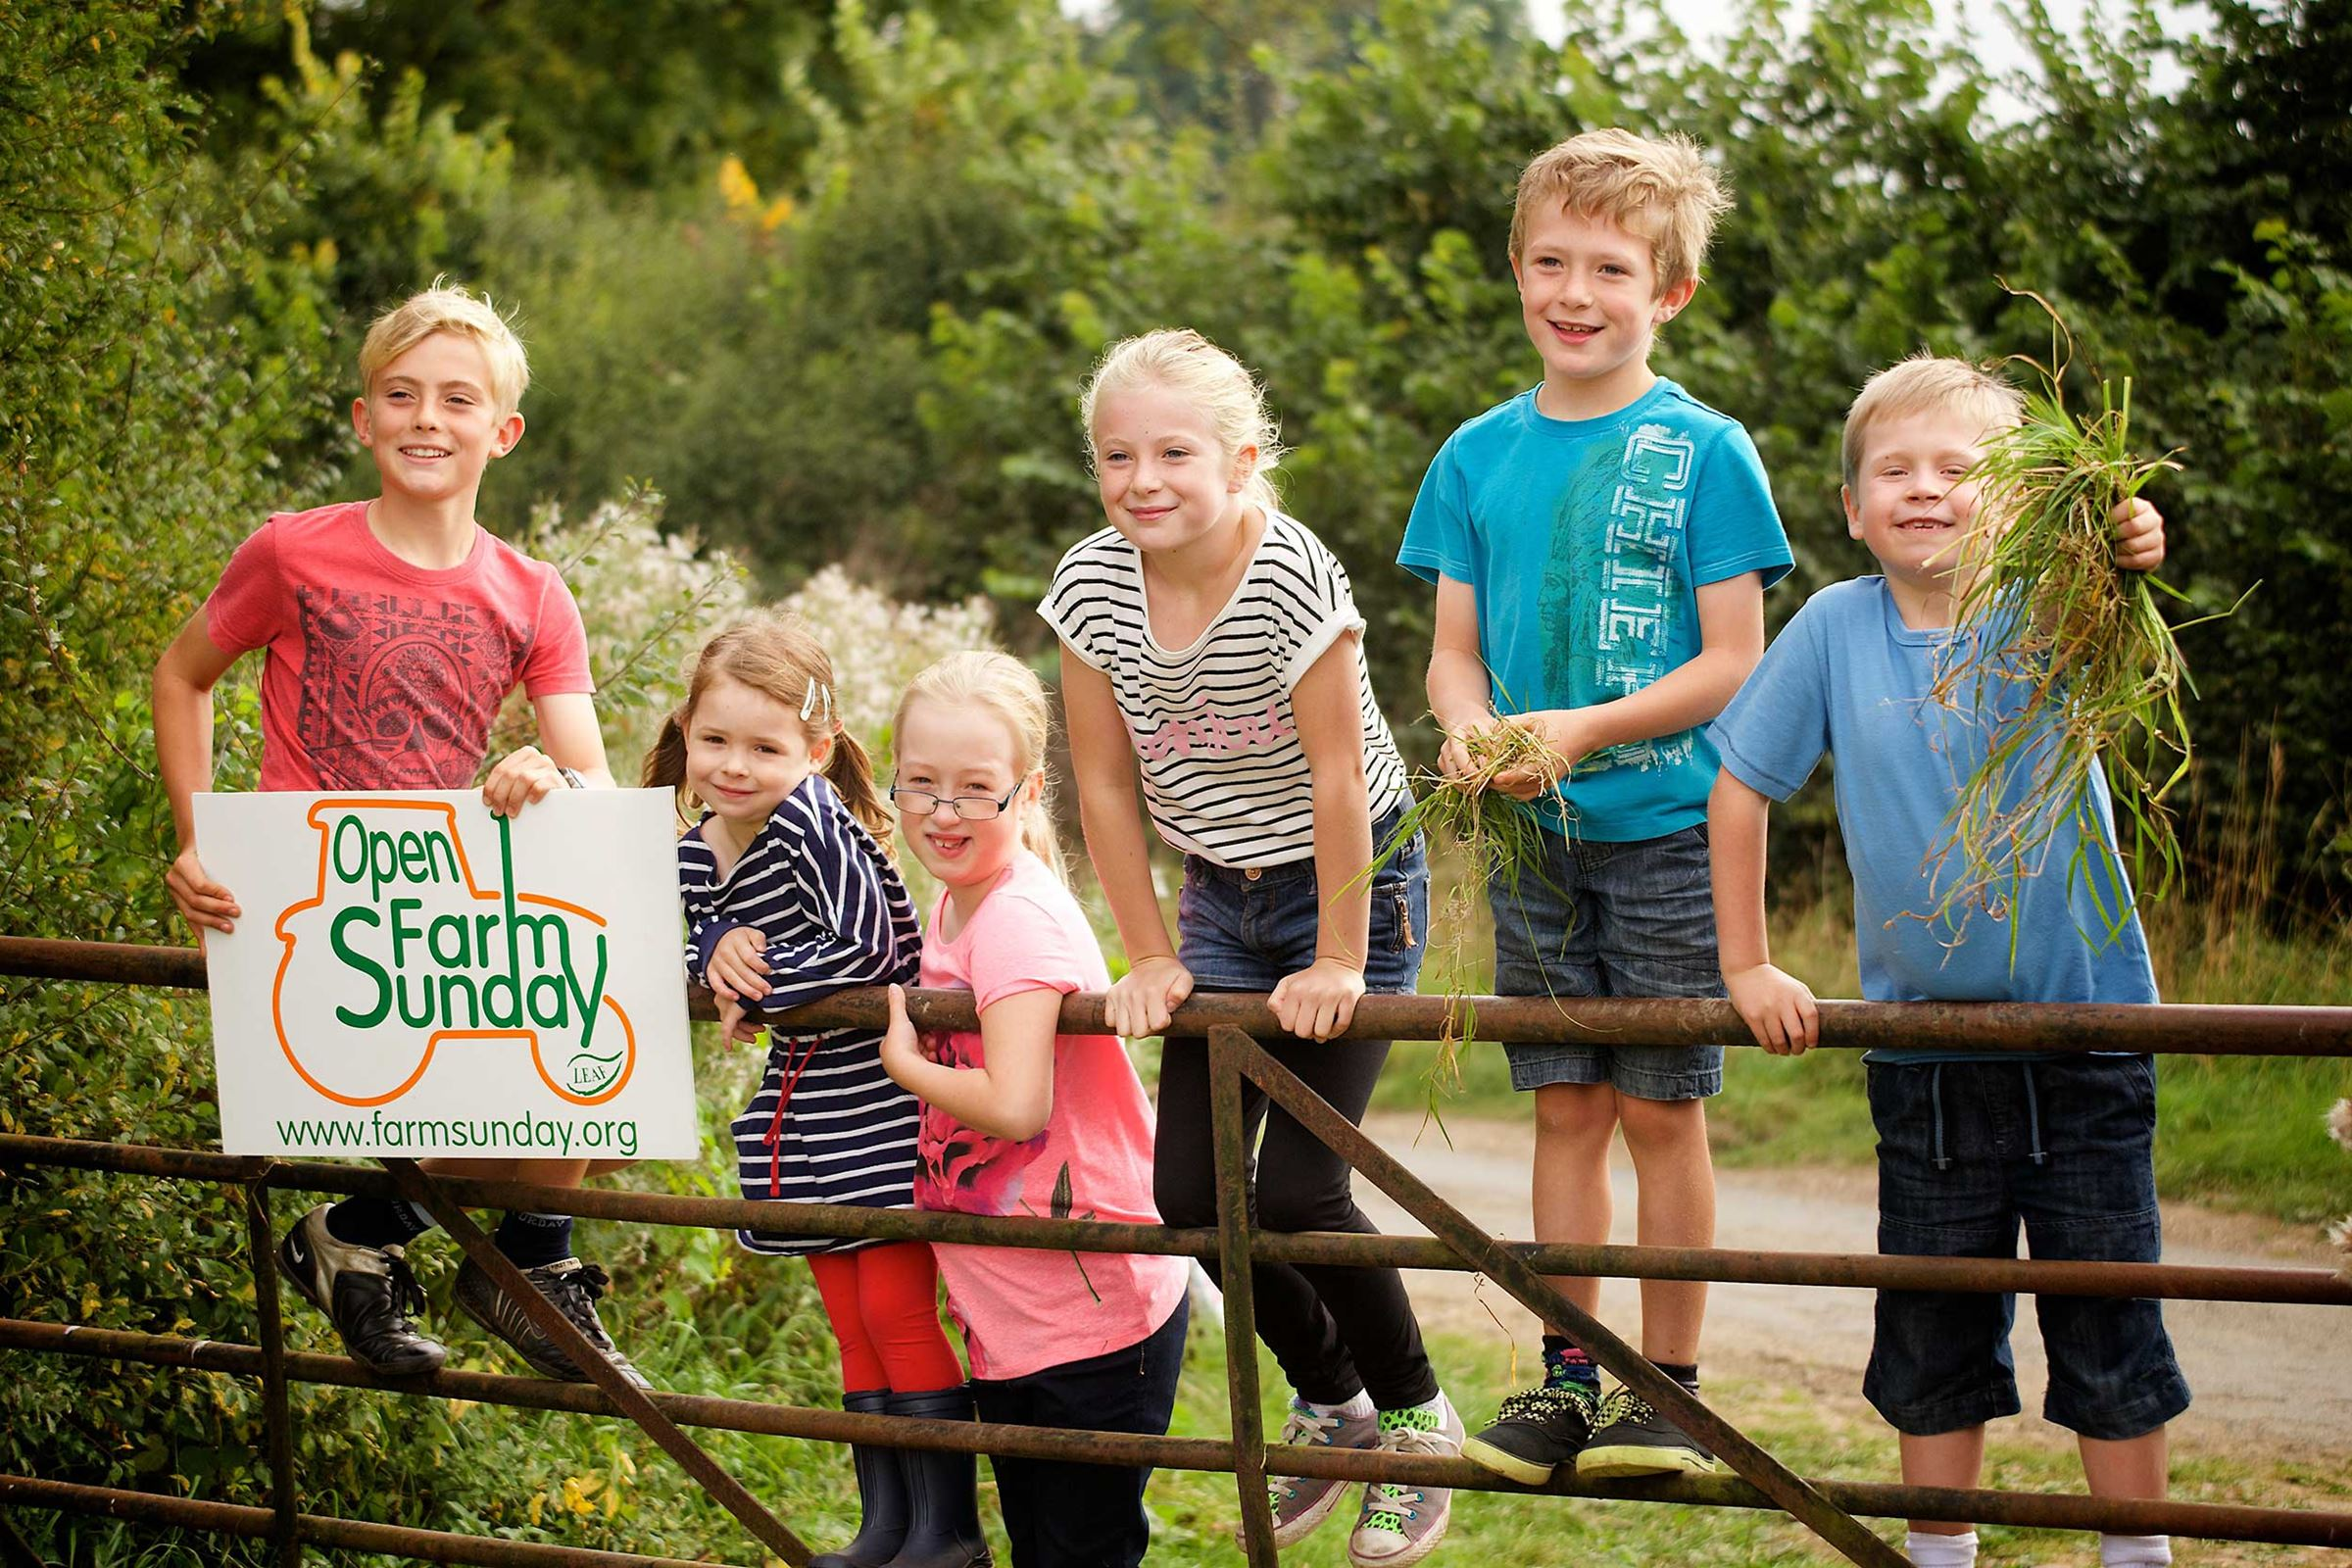 Children standing on farm gate one of whom is holding an Open Farm Sunday sign